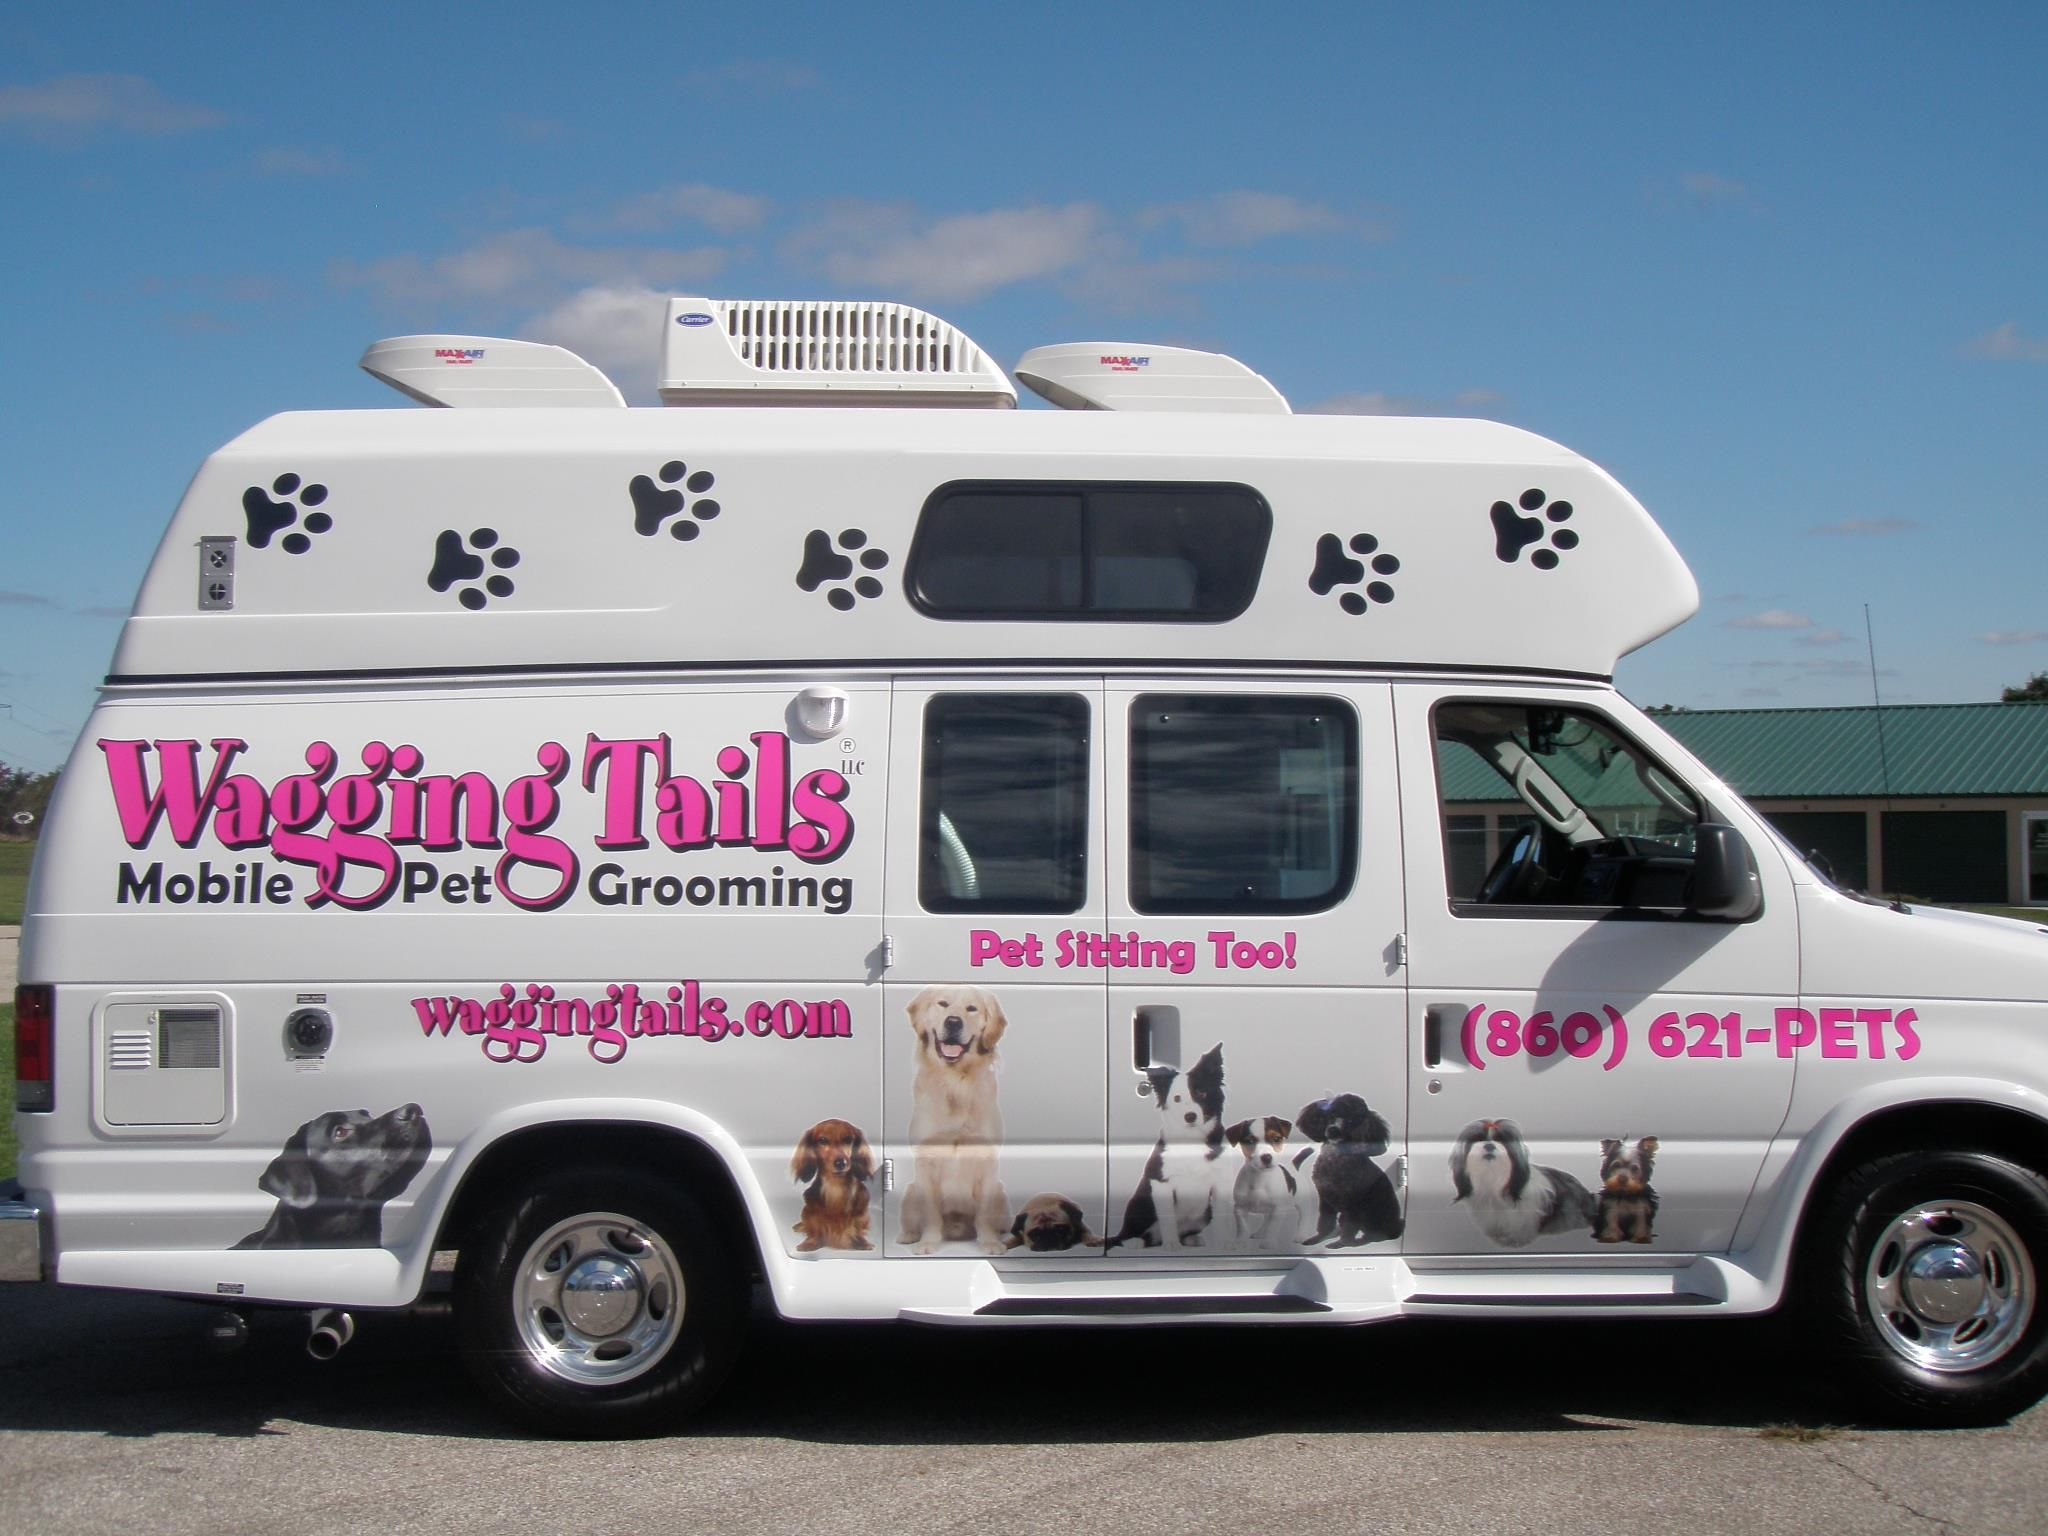 Services Mobile pet grooming, Dog teeth, Dog groomers